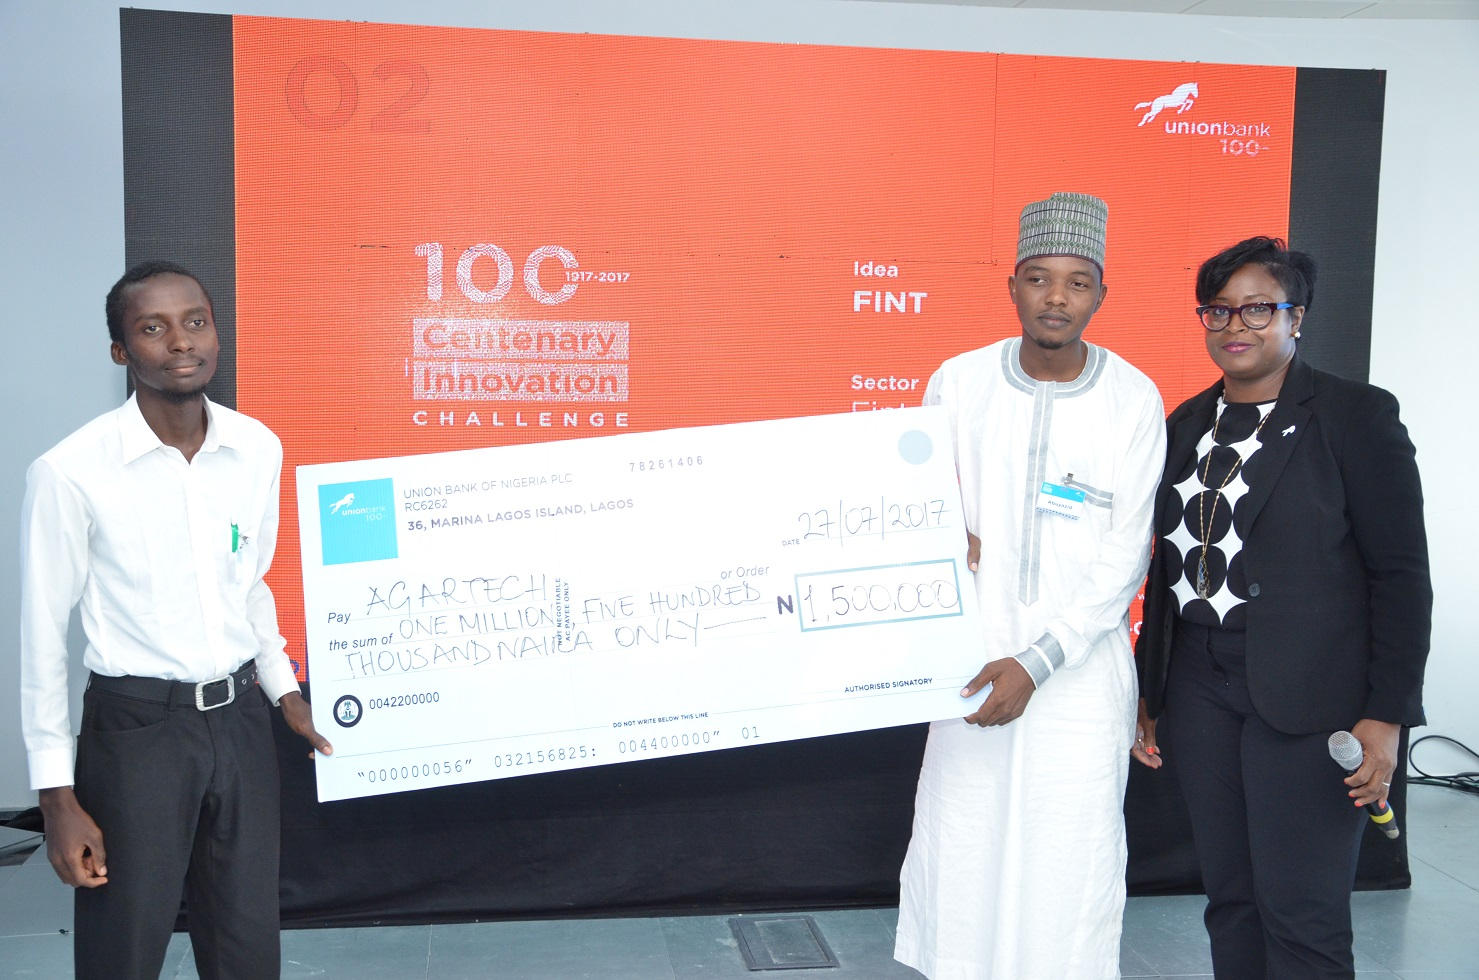 Lola Cardoso, Head Group Corporate Strategy Union Bank Presents the cheque to The first runners-up, Abuyaziz Musaddiq and Mohammed Mustapha Ilyas